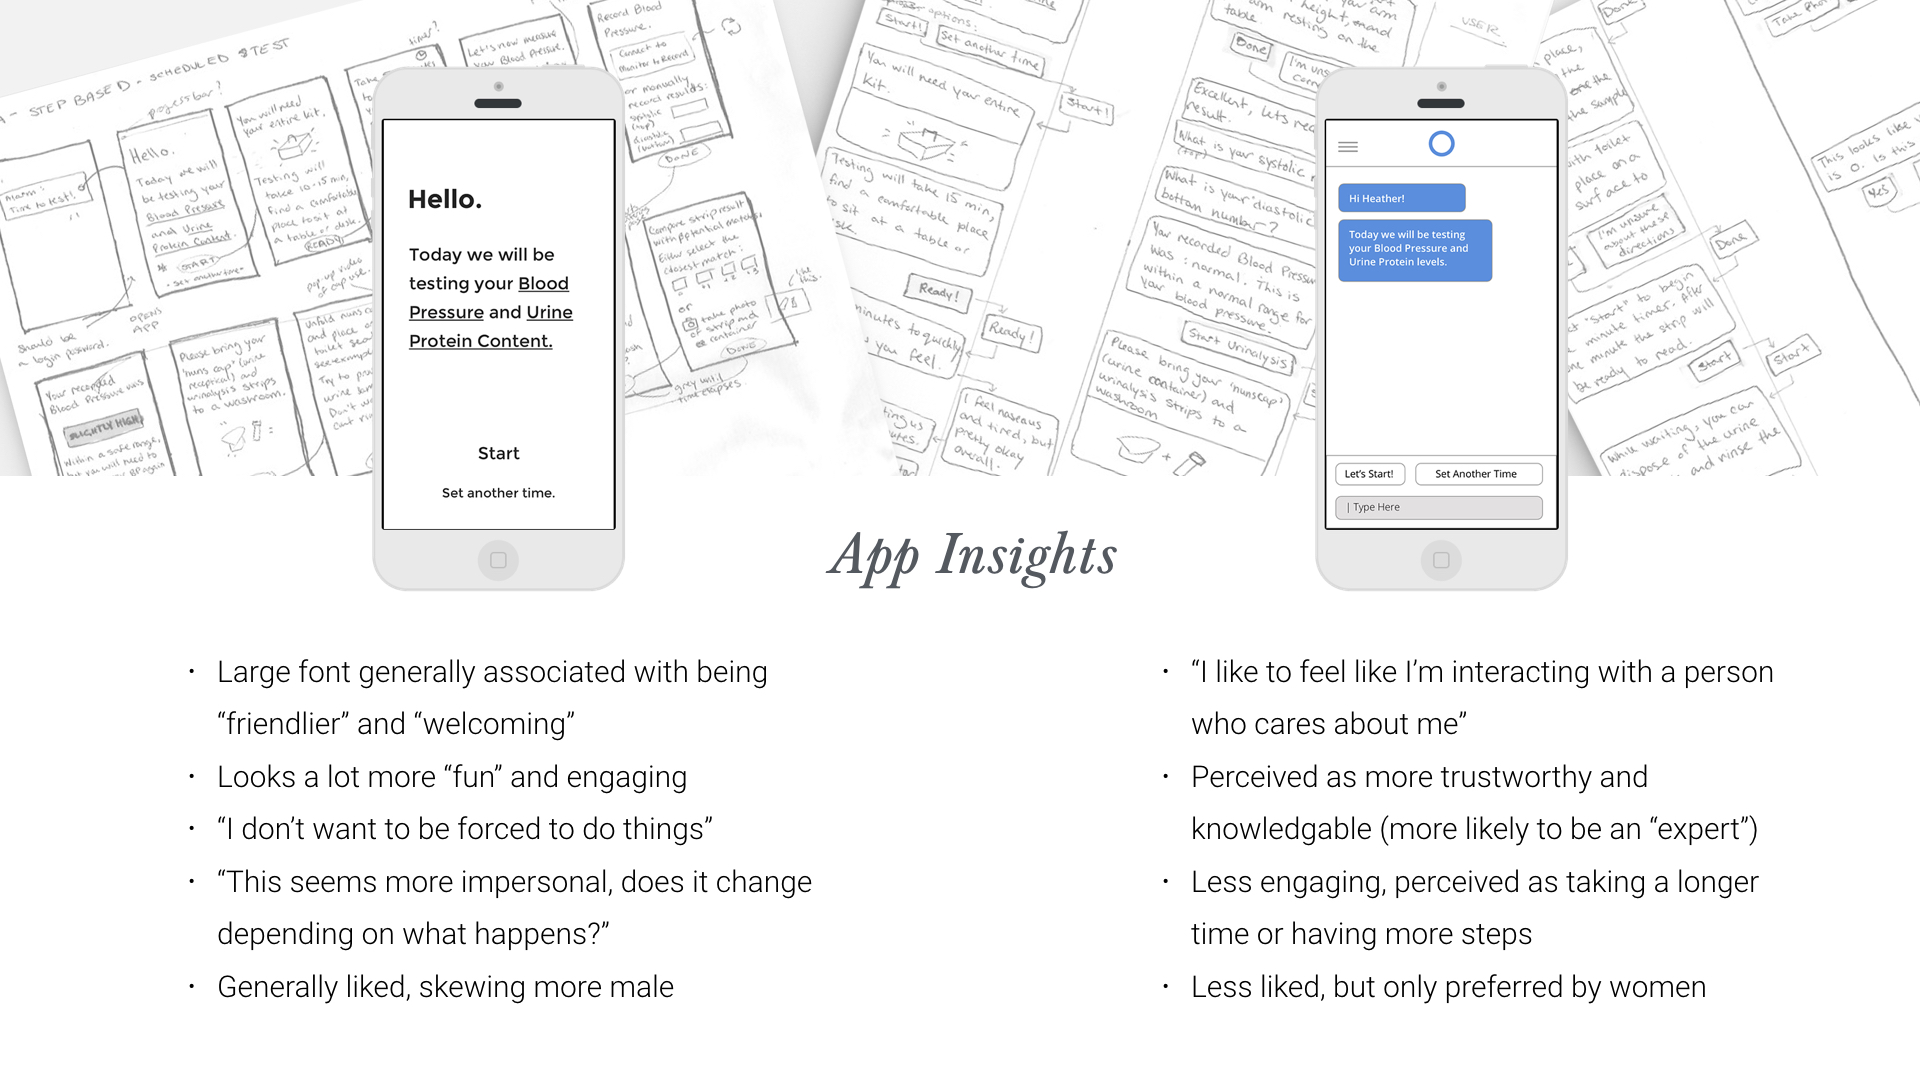 Two types of apps which were preliminarily prototyped: a step-based approach, and a conversational interface.